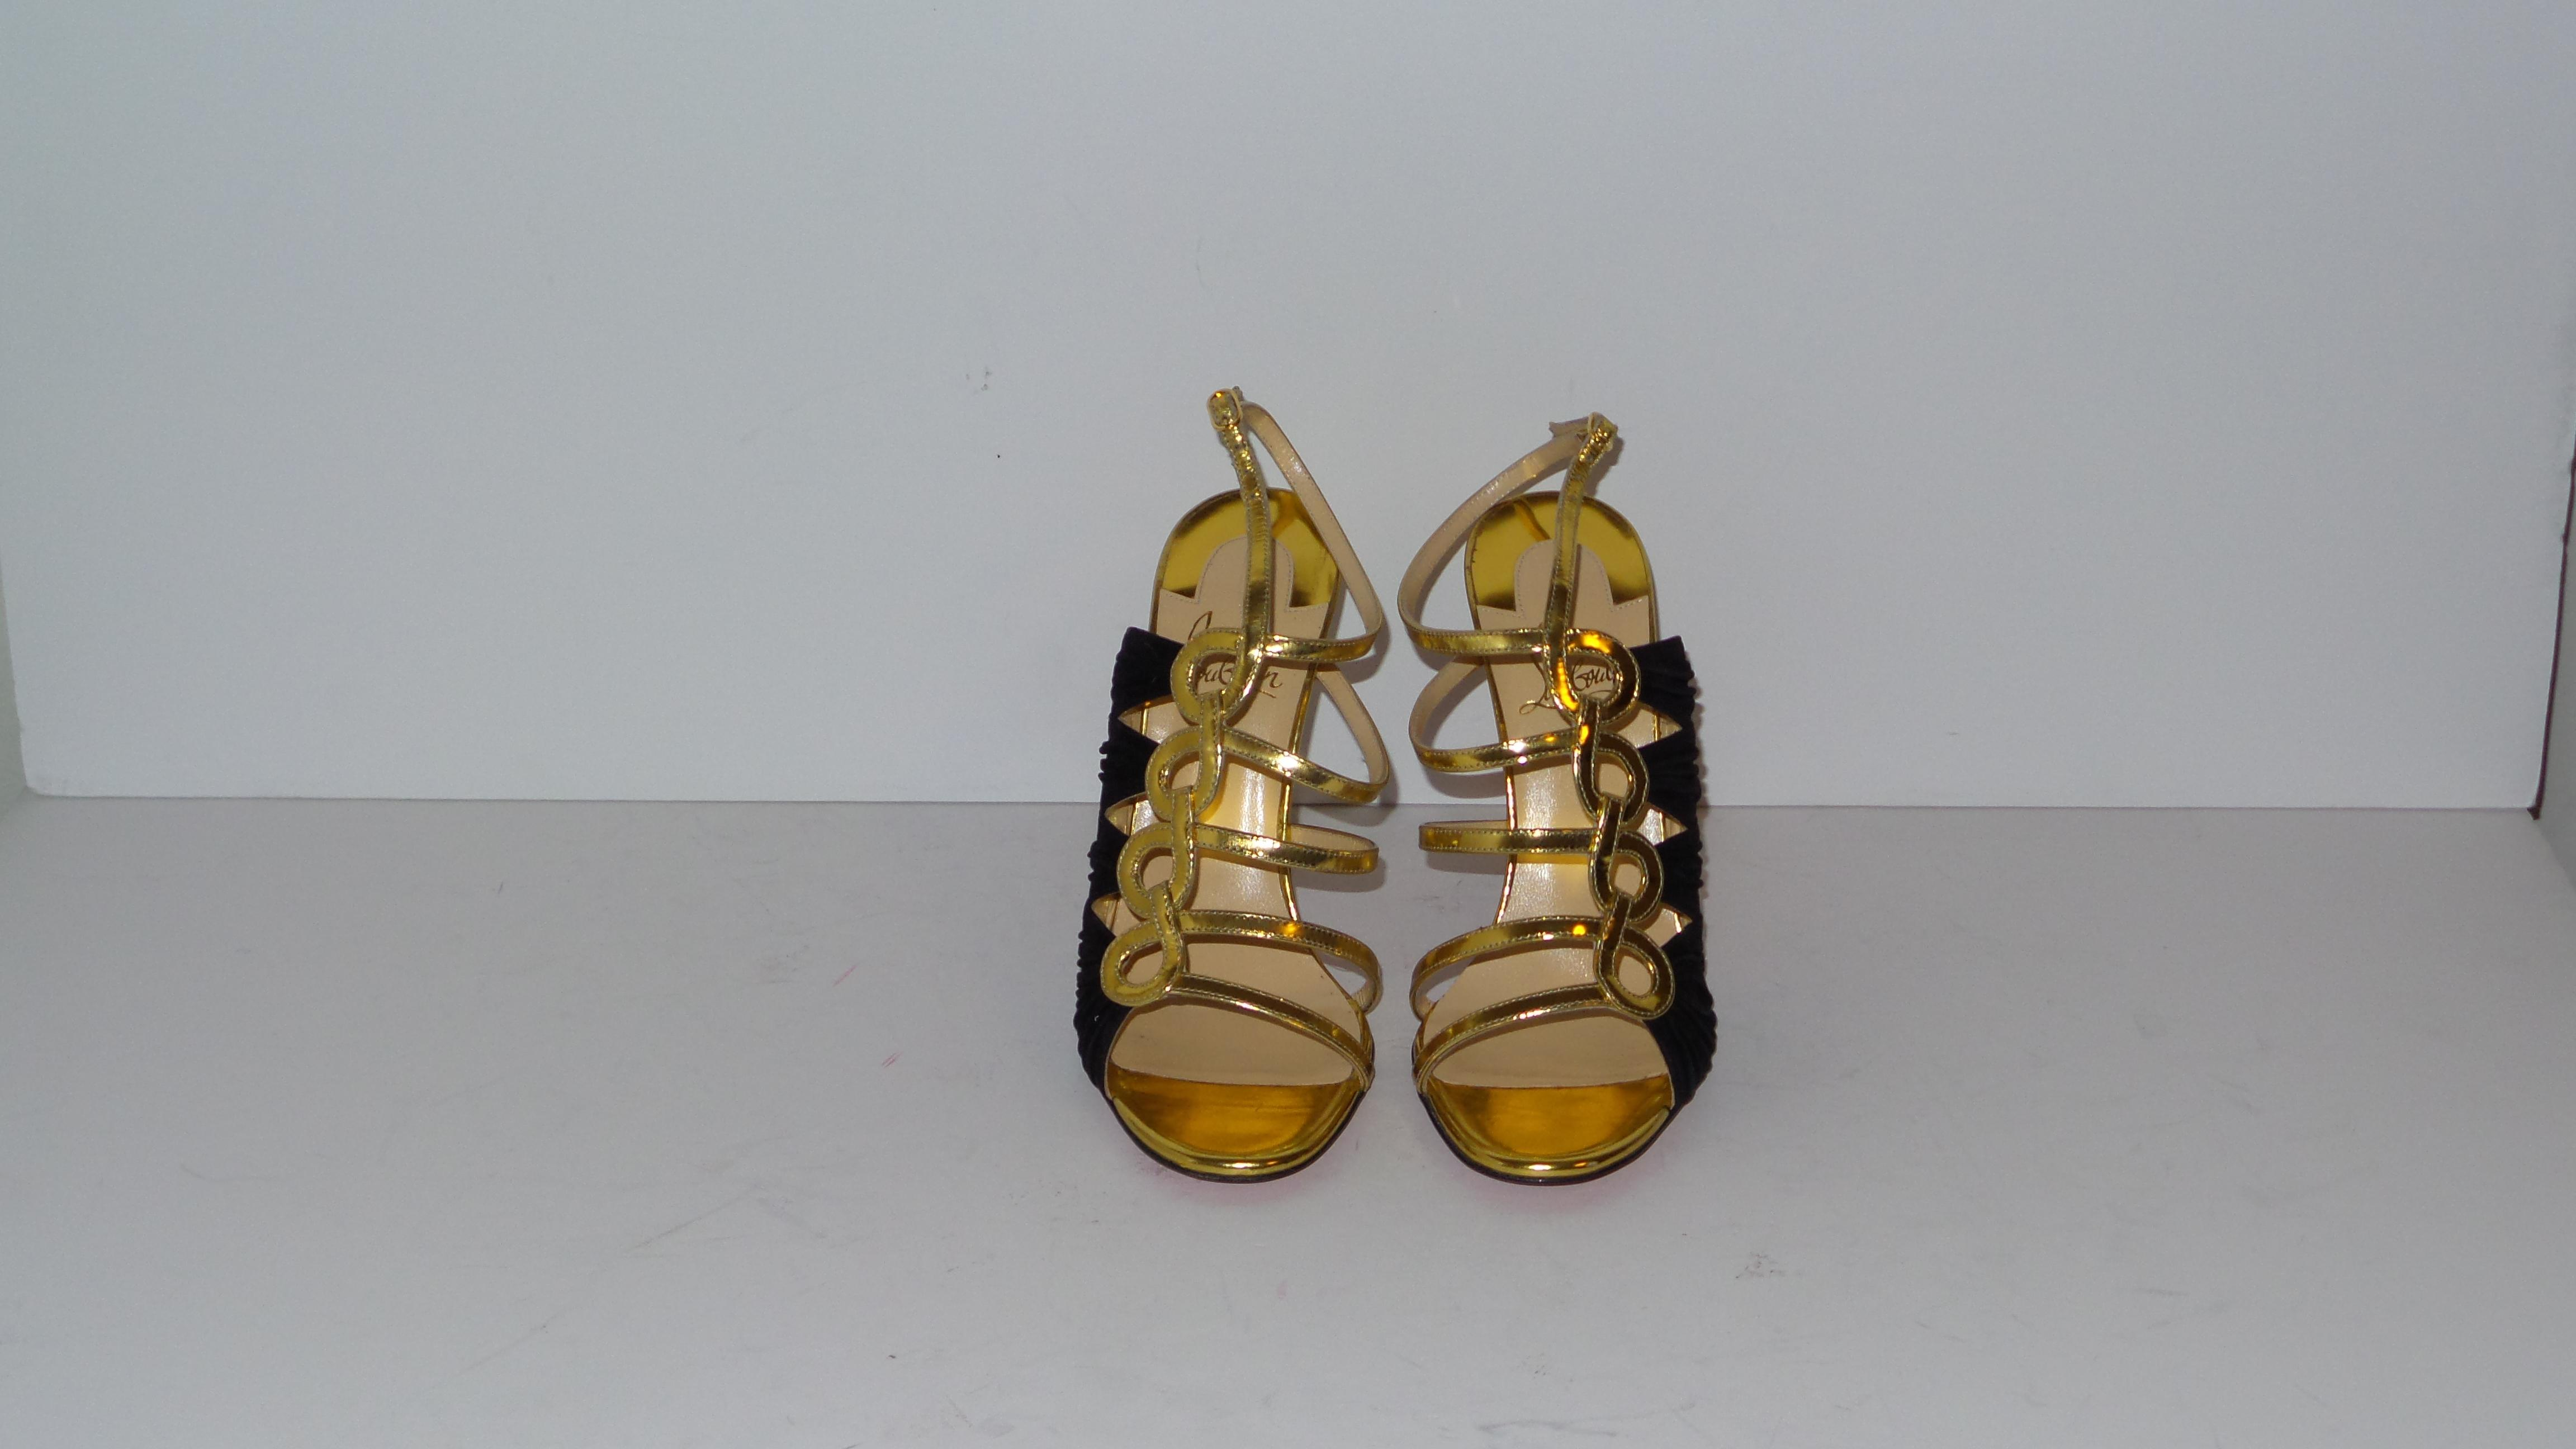 5544c02e209 ... Christian Louboutin Black and Gold Tina Cage Cage Cage 100 Pumps Heels  Sandals Size US 7 ...